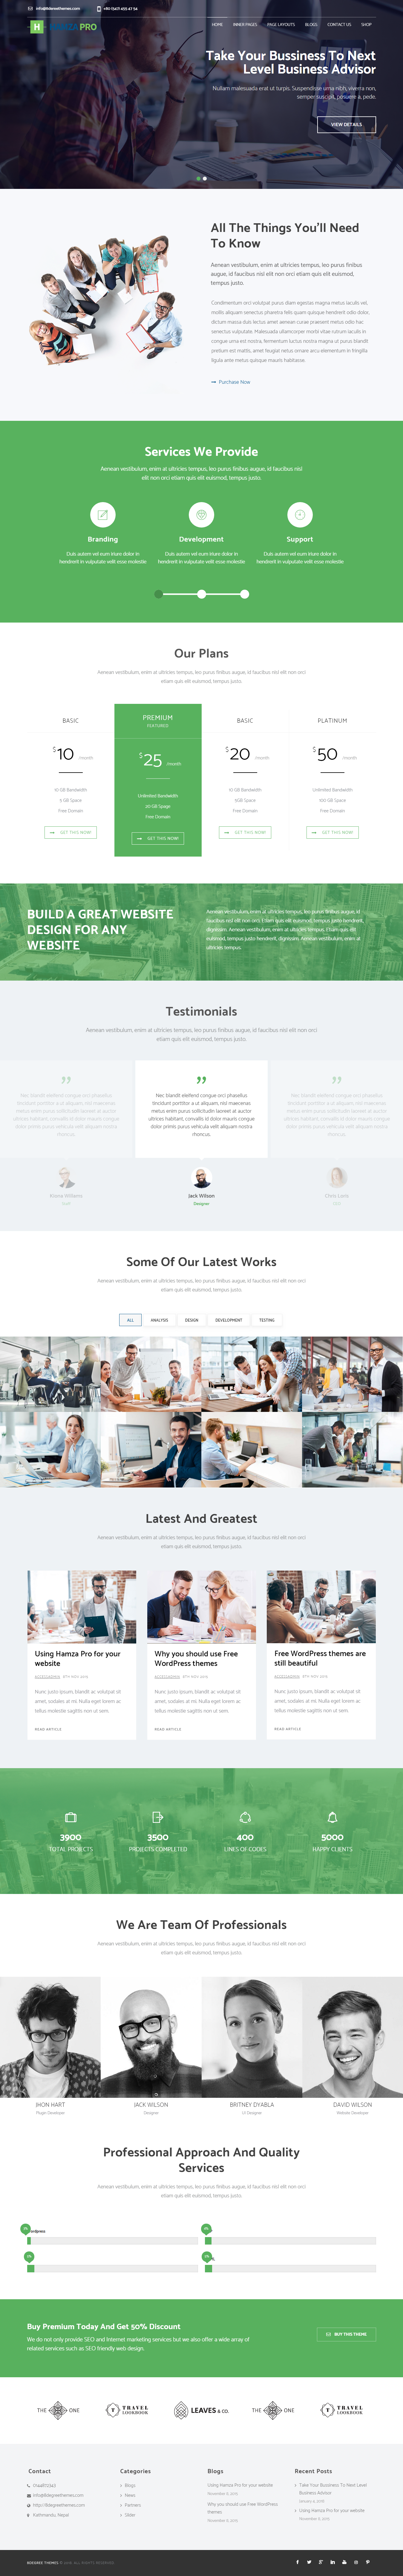 Hamza Pro - Best Coming Soon and Under Construction Premium WordPress Themes and Templates